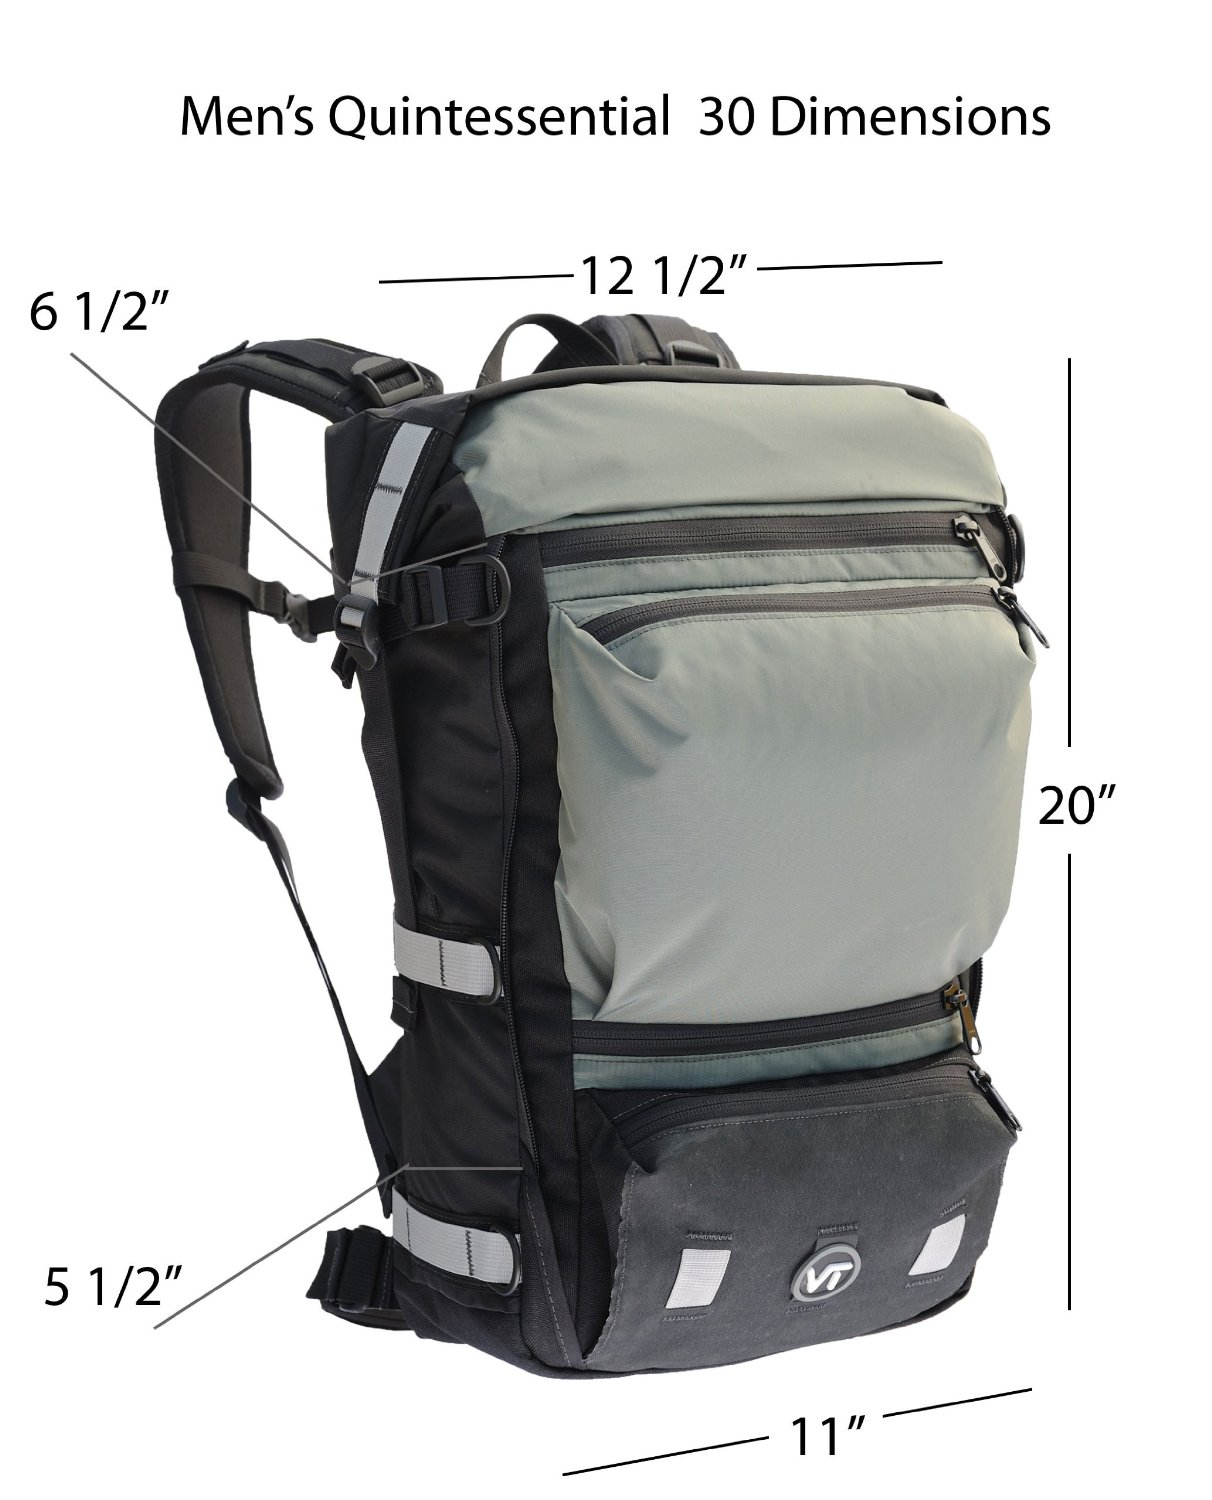 Waterproof Backpack Reviews s1mCTekT